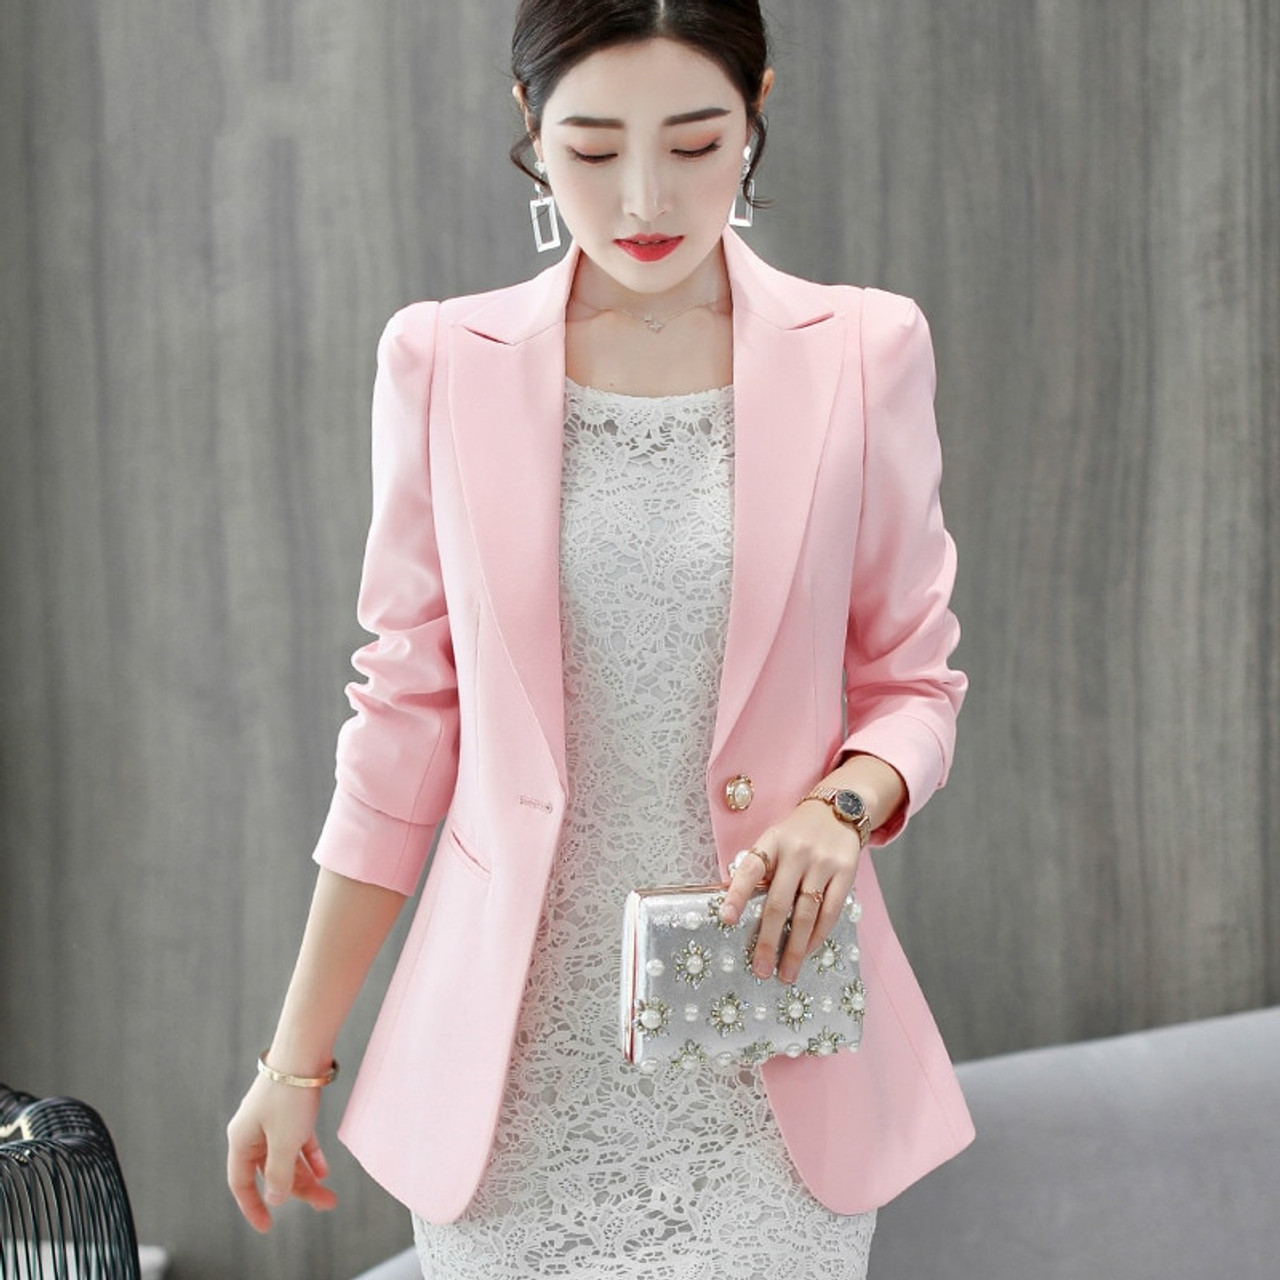 Back To Search Resultswomen's Clothing Suits & Sets Fashion Spring Autumn Women Blazers And Jackets Work Office Lady Suit Slim White Black Blue Button Business Female Blazer Coat